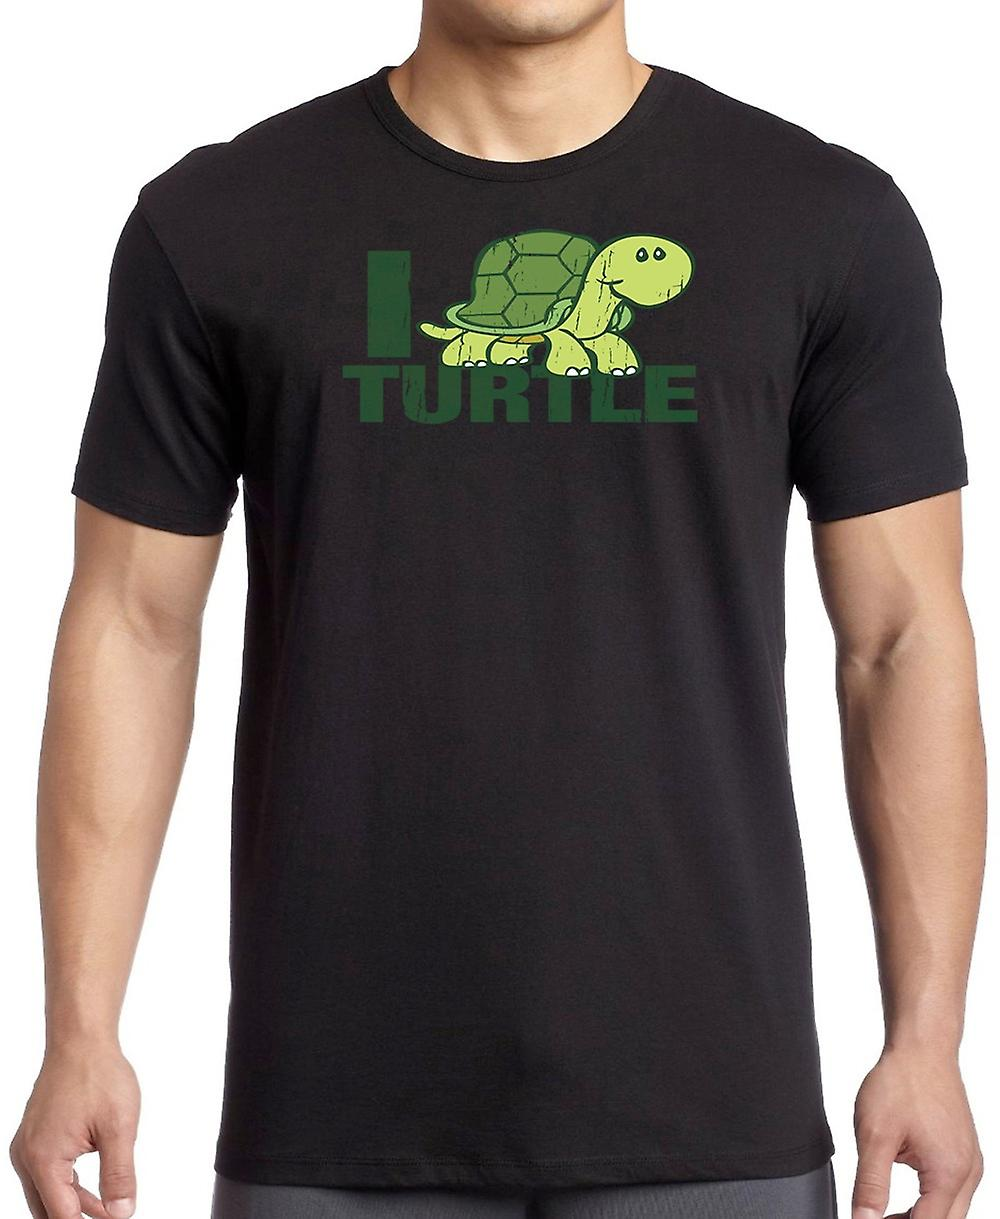 I Love Turtle - Cool Kids T Shirt